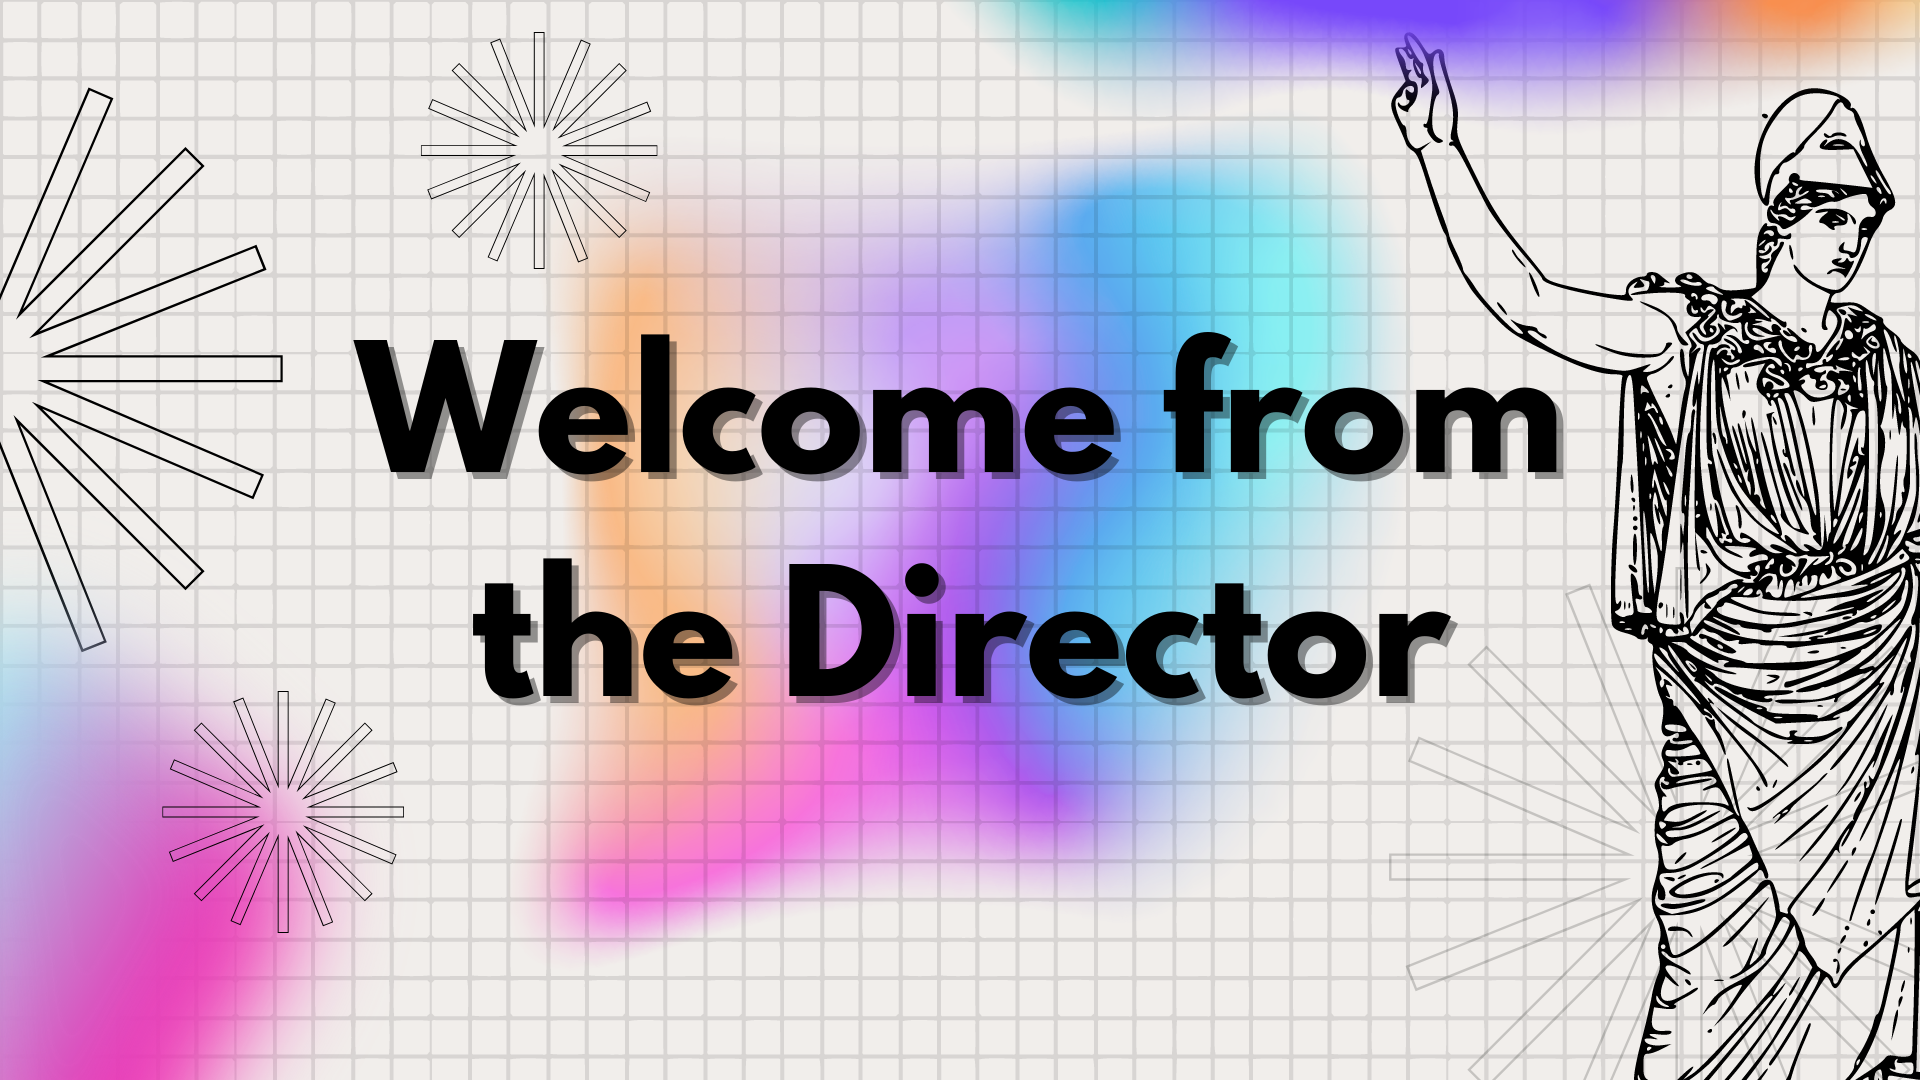 Link to the director welcome